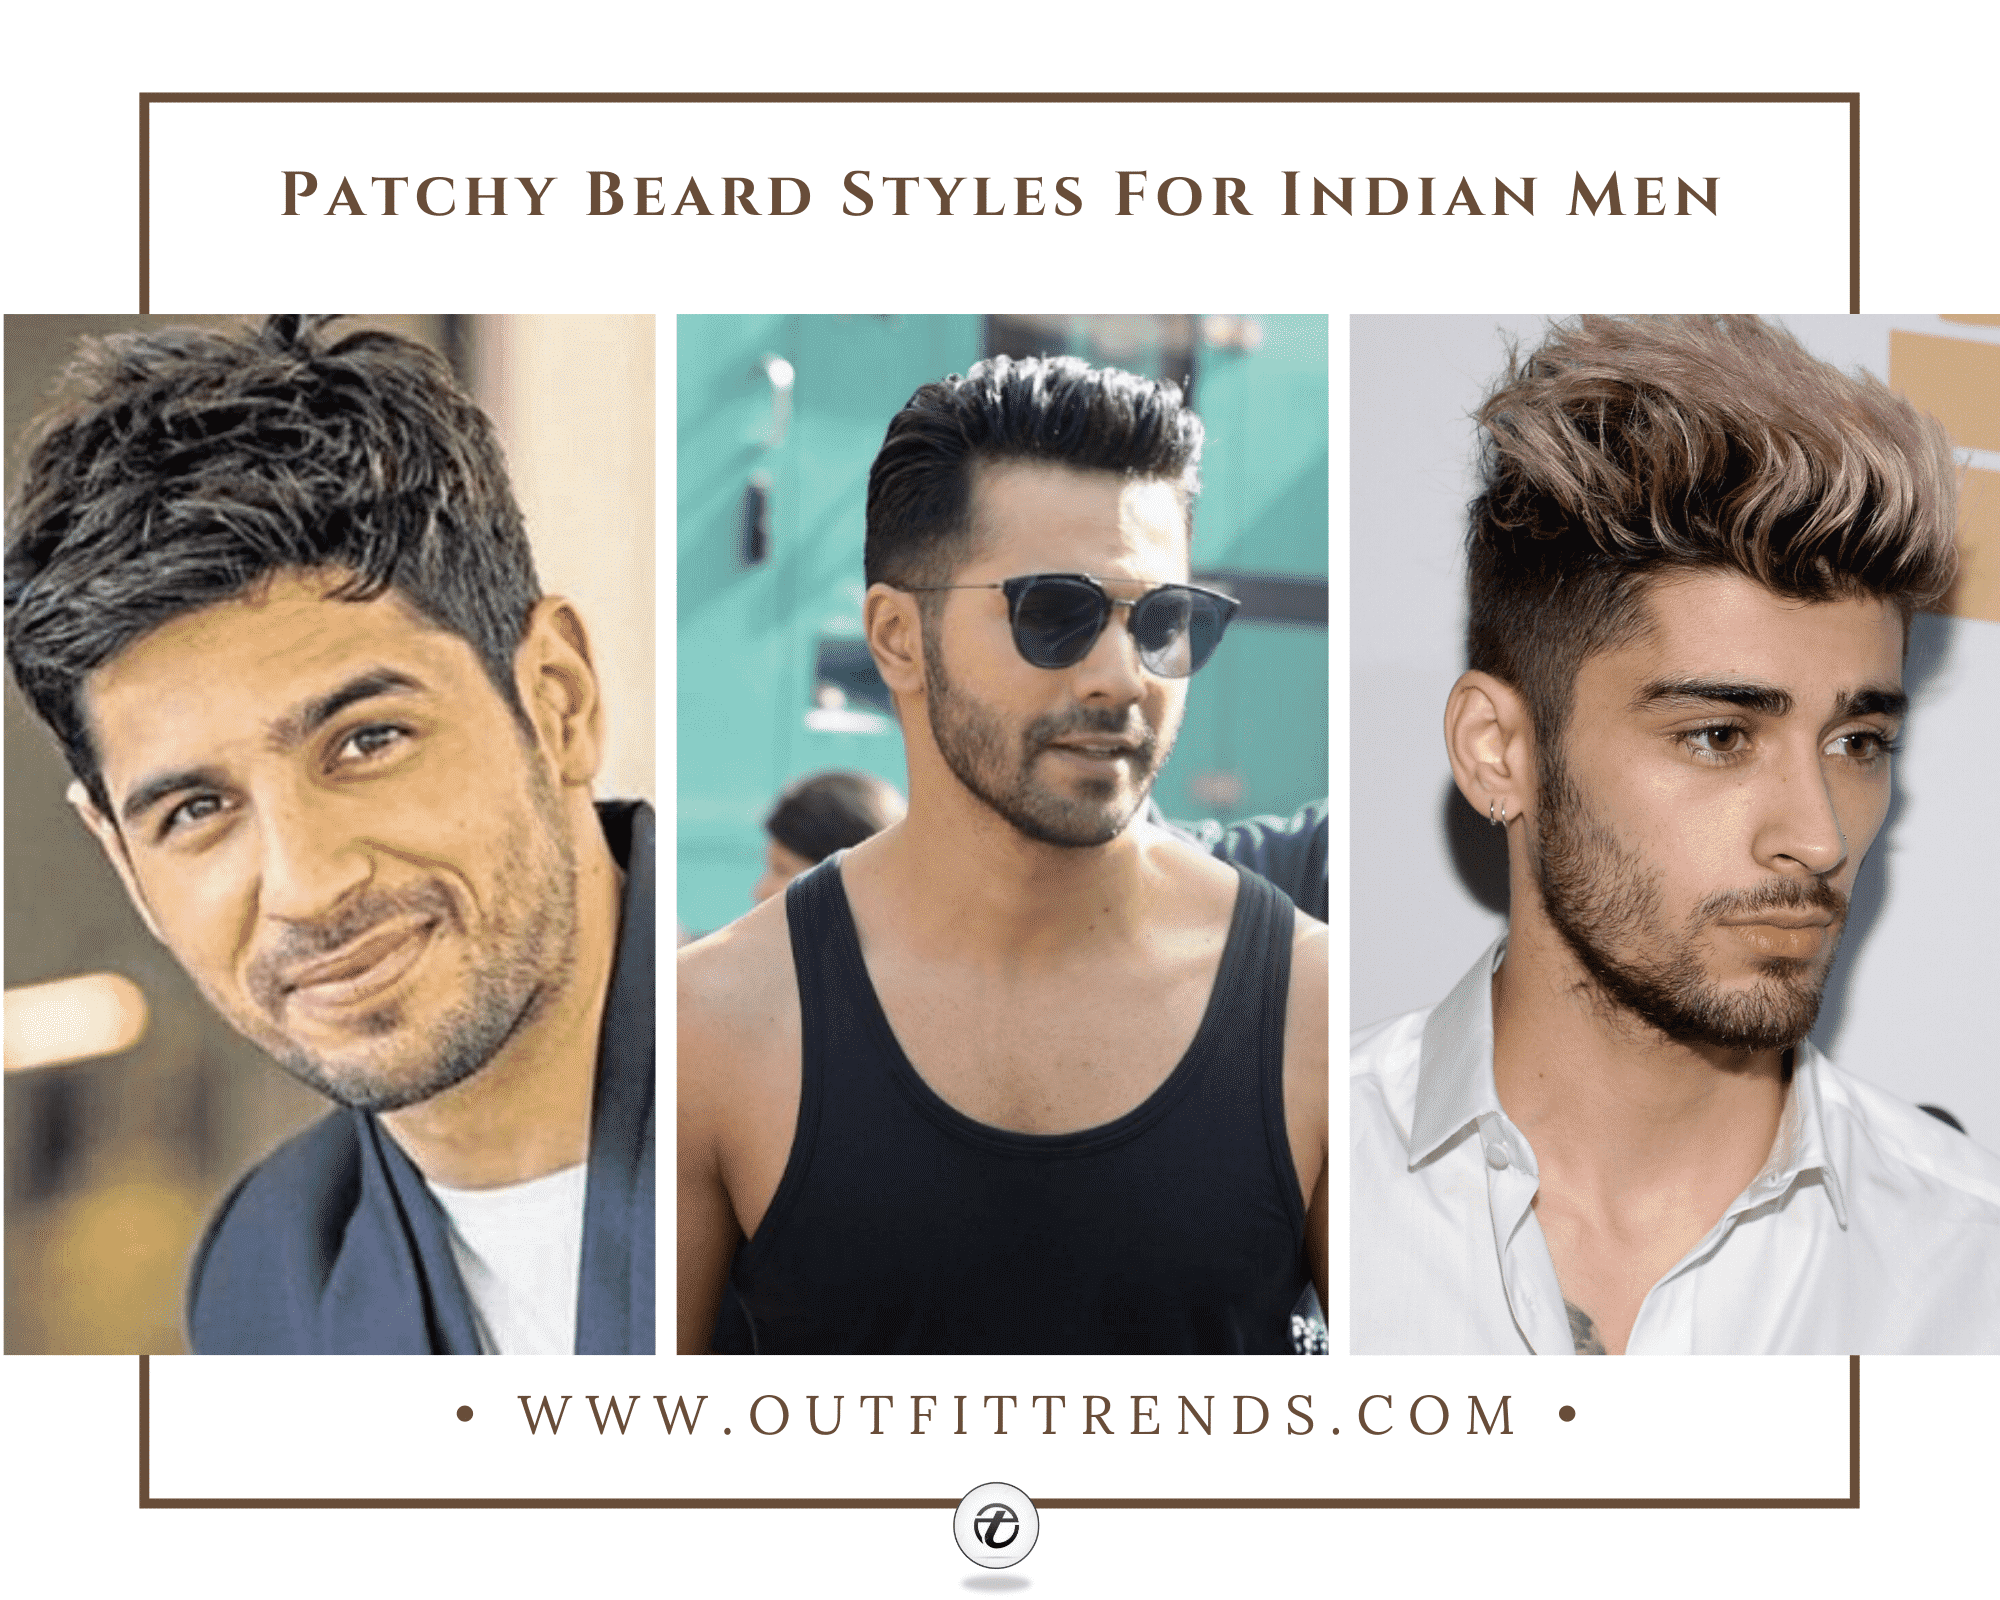 20 Patchy Beard Styles For Indian Men | Tips & Styling Ideas